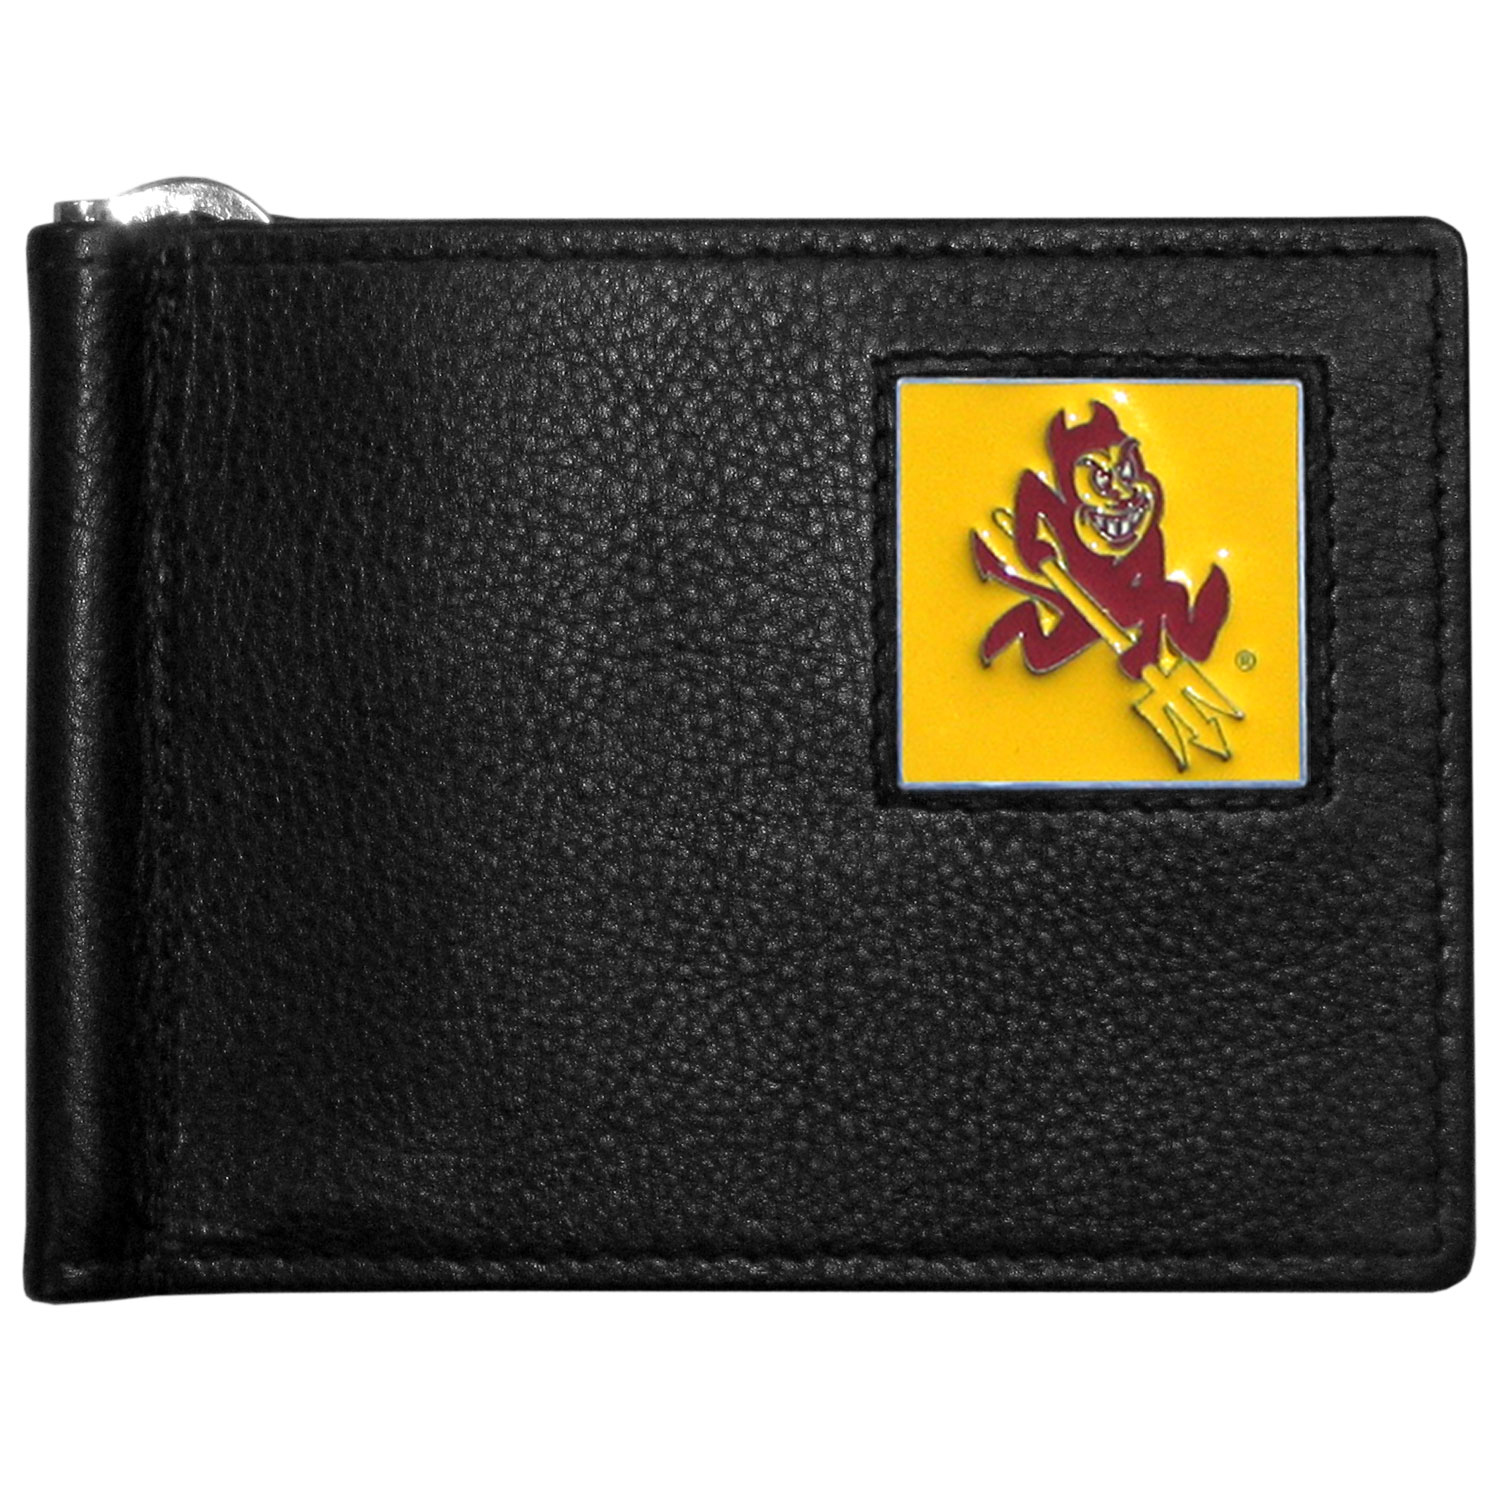 Arizona St. Sun Devils Leather Bill Clip Wallet - This cool new style wallet features an inner, metal bill clip that lips up for easy access. The super slim wallet holds tons of stuff with ample pockets, credit card slots & windowed ID slot.  The wallet is made of genuine fine grain leather and it finished with a metal Arizona St. Sun Devils emblem. The wallet is shipped in gift box packaging.